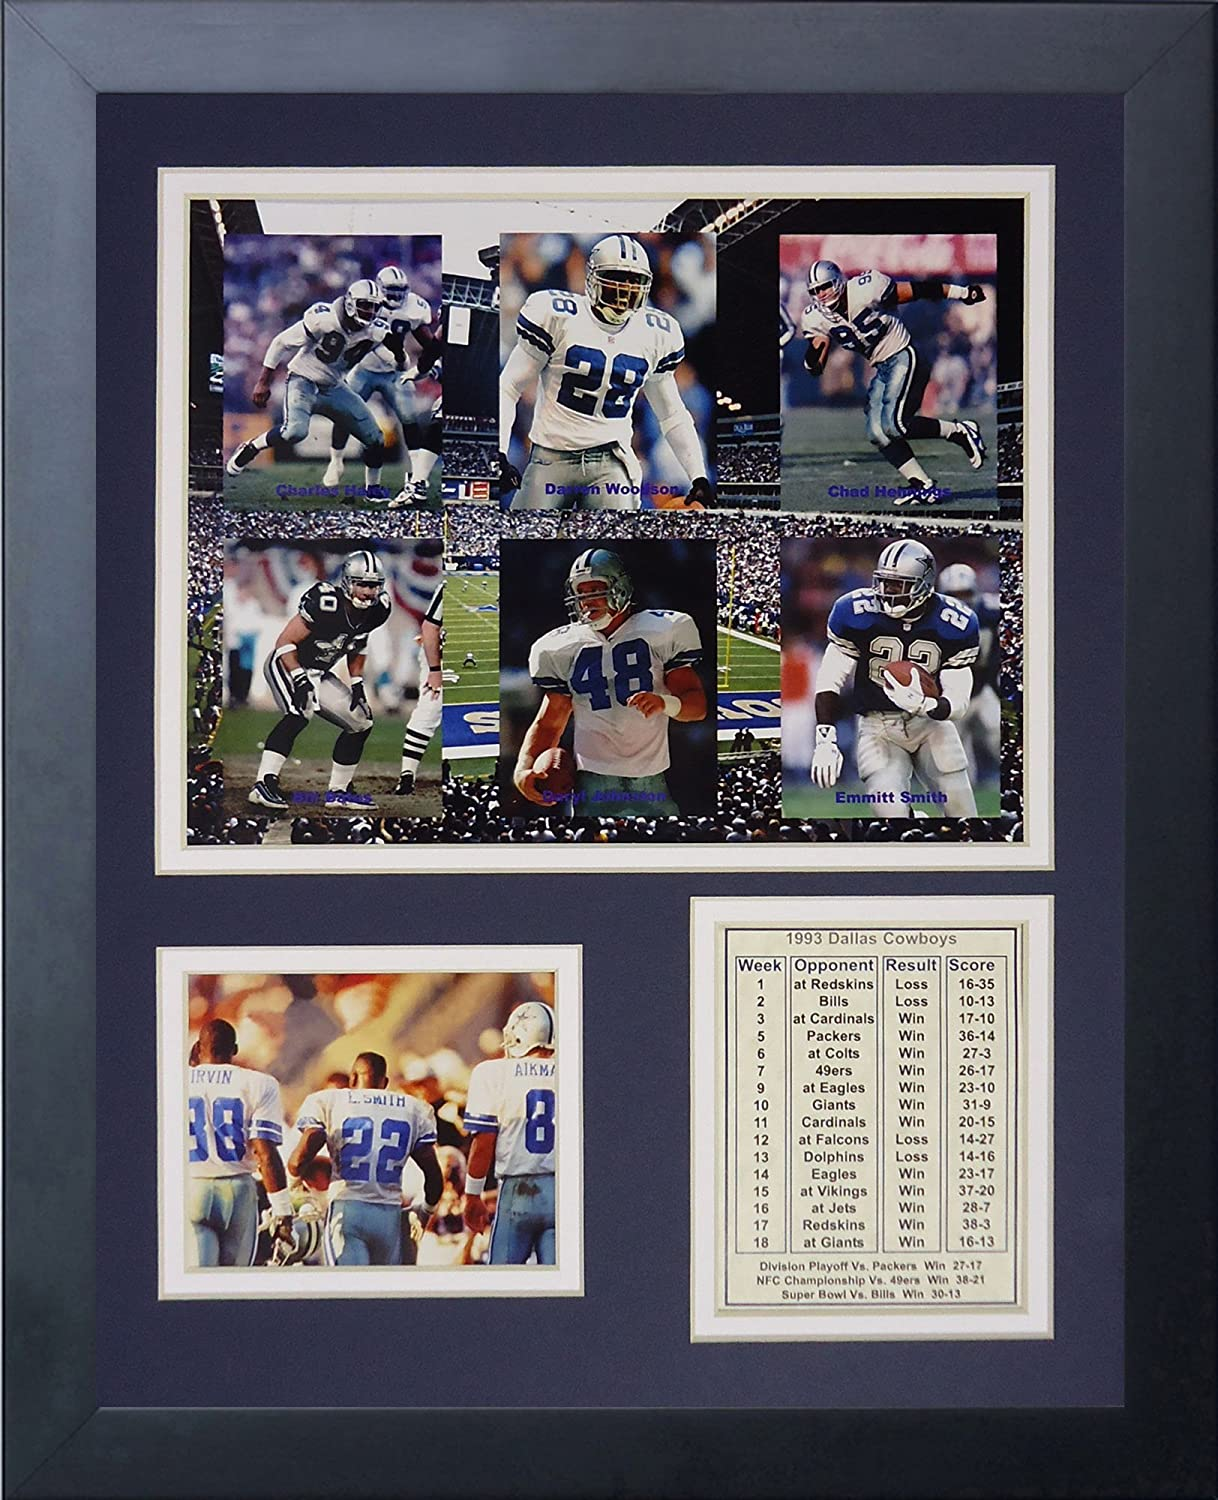 Legends Never Die Dallas Cowboys 1993 Super Bowl Champions Framed Photo Collage 11x14-Inch